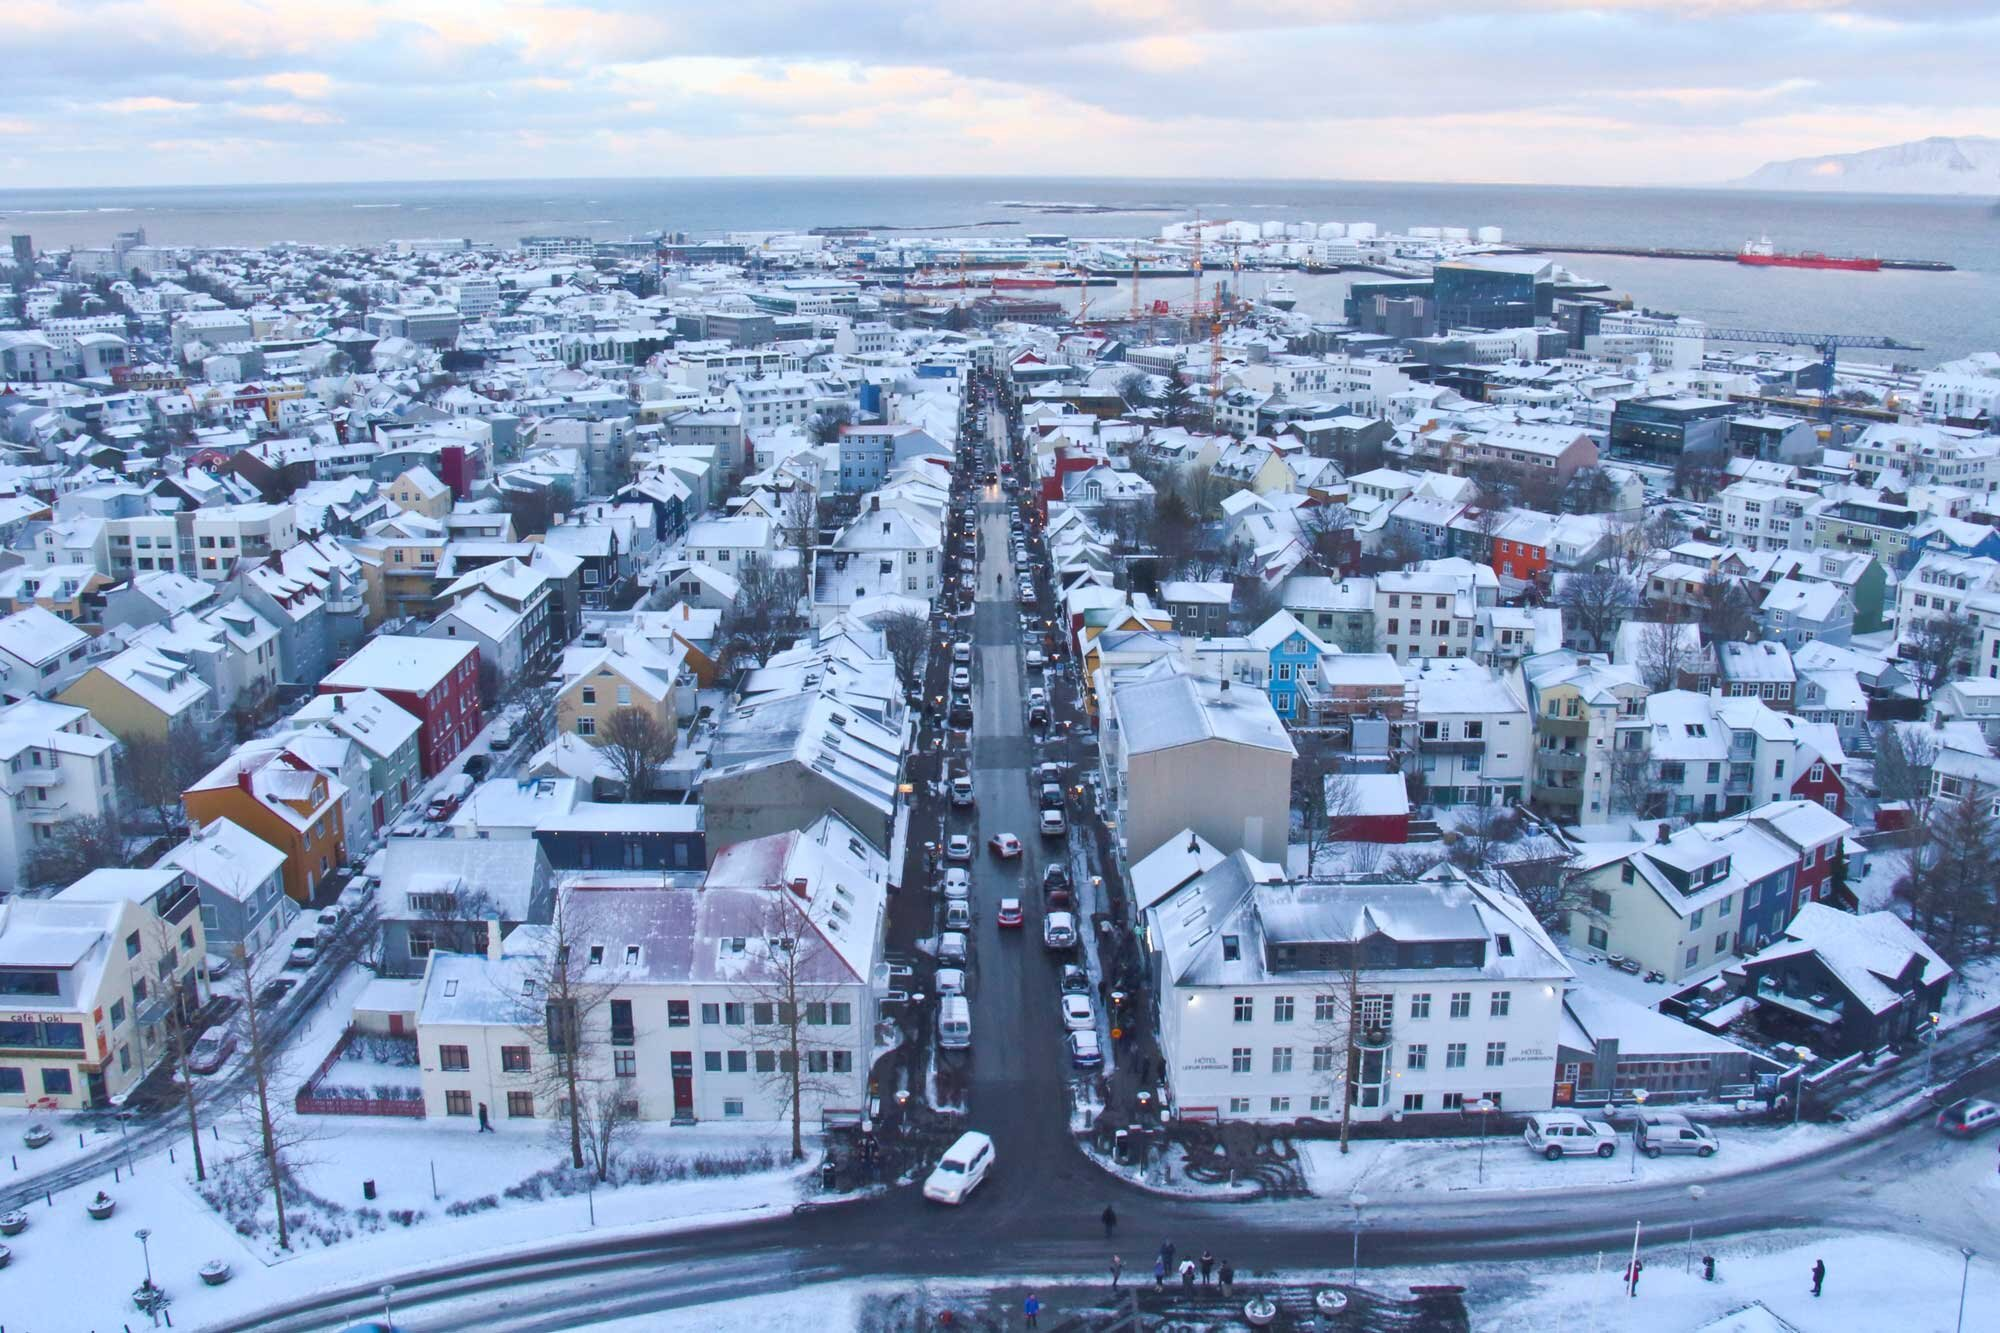 Winter in Iceland - 6 Reasons to Visit Iceland this Winter